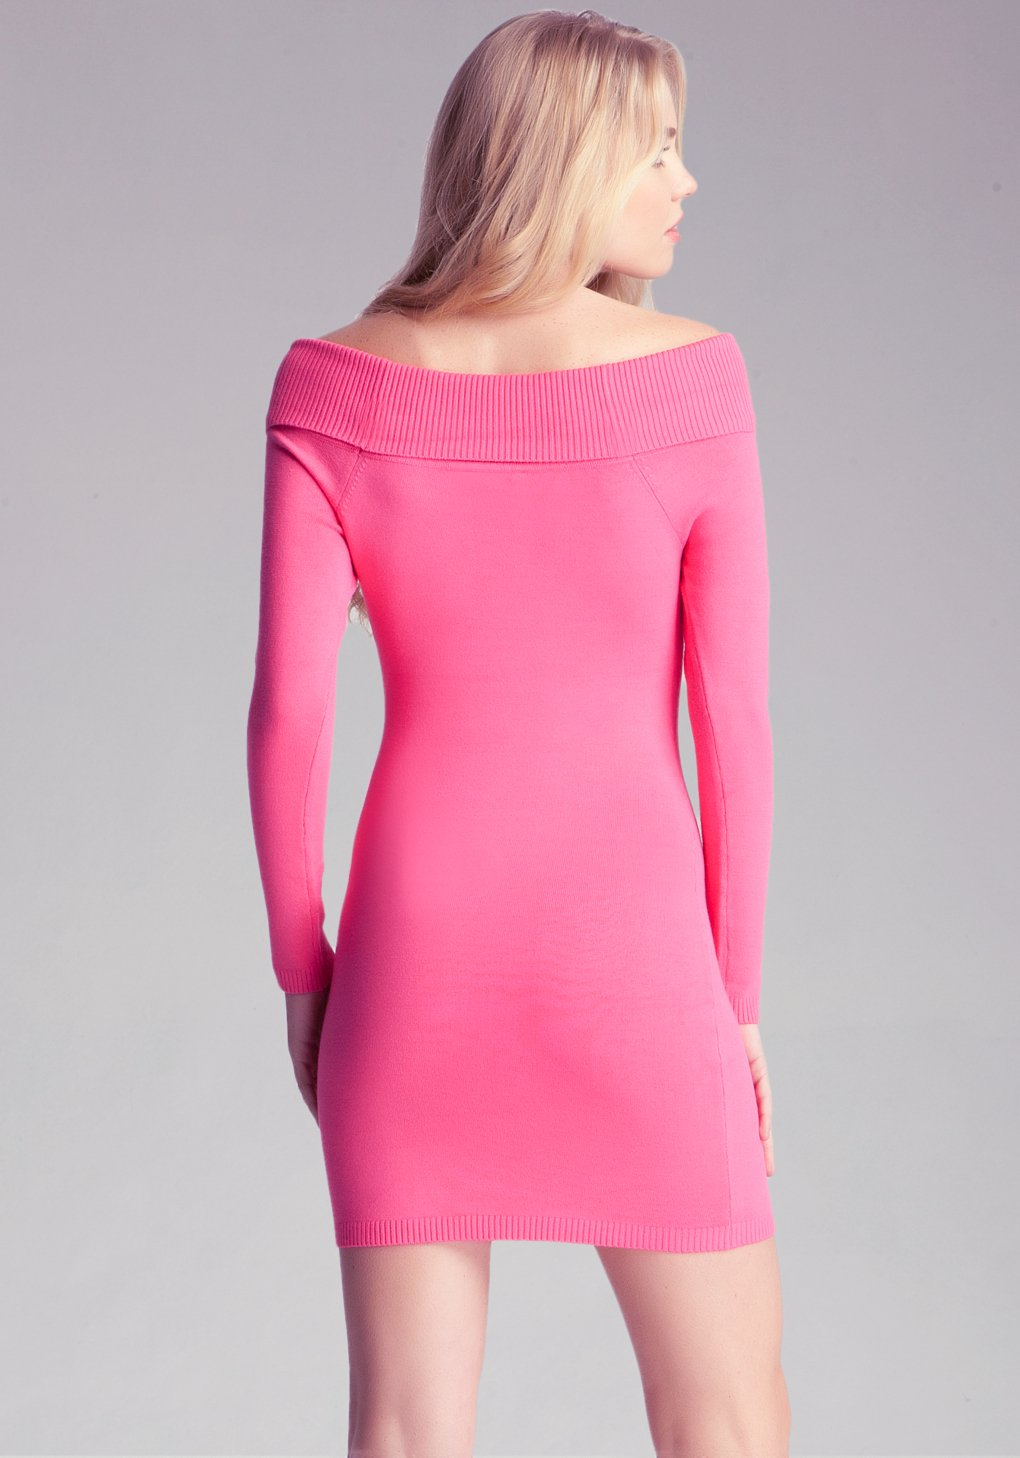 cba4c0a800 Bebe Off Shoulder Sweater Dress in Pink - Lyst